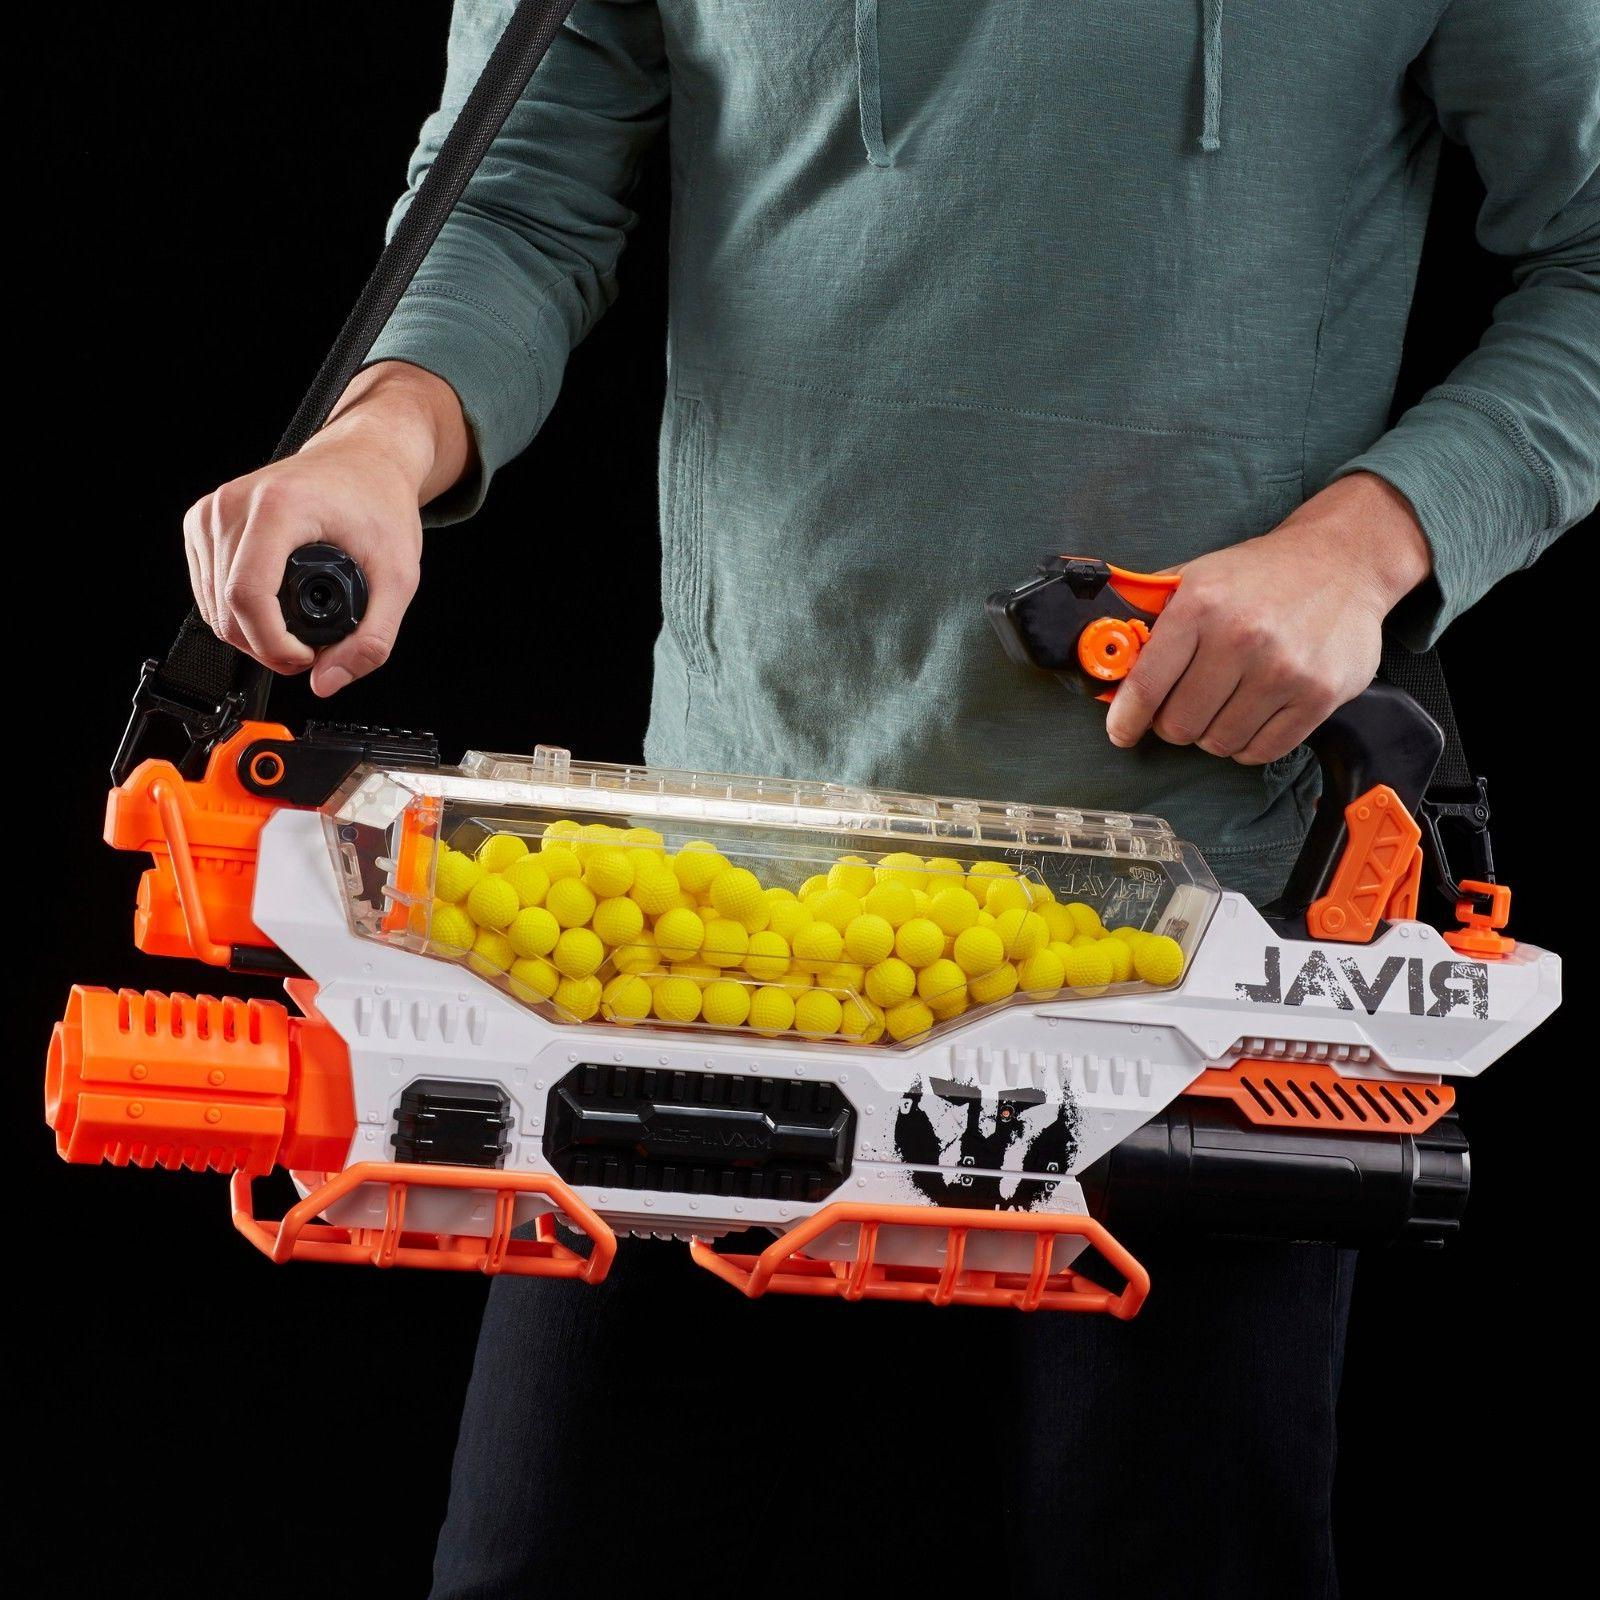 NEW Toy For Kids Adults Boys Girls Rival Blaster 200 Rounds